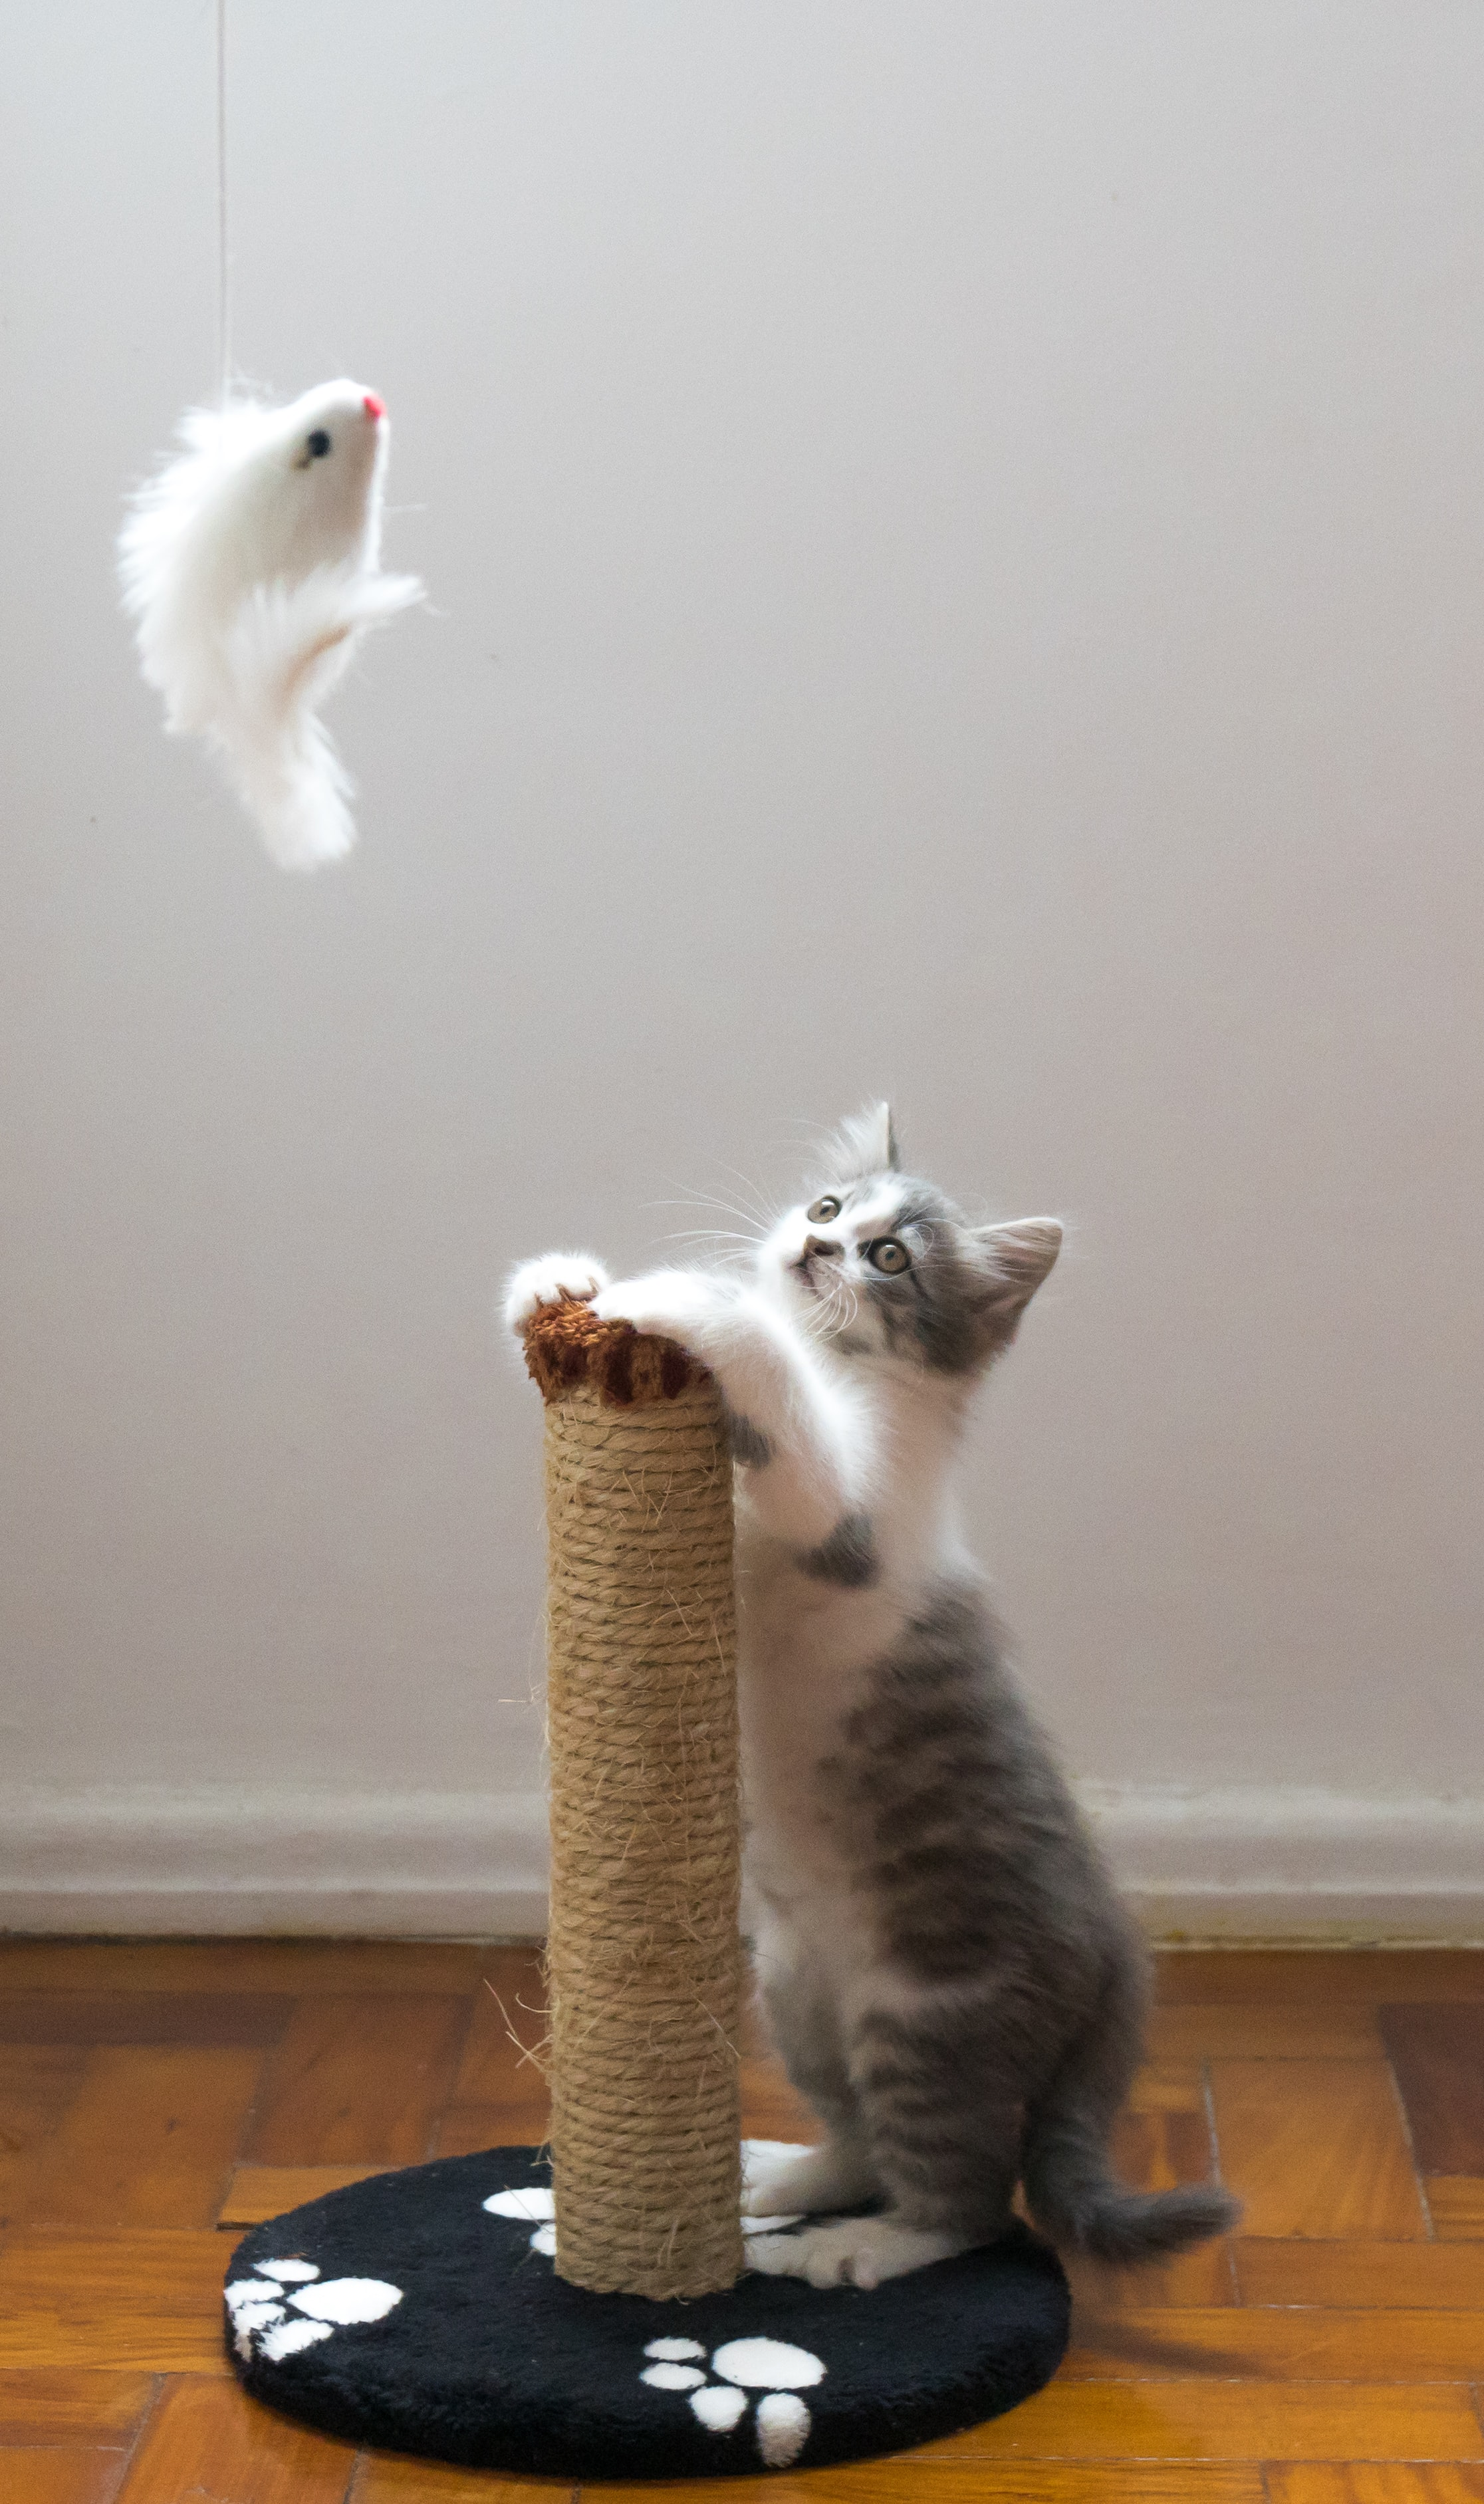 15 homemade cat toys - kitten playing with toy